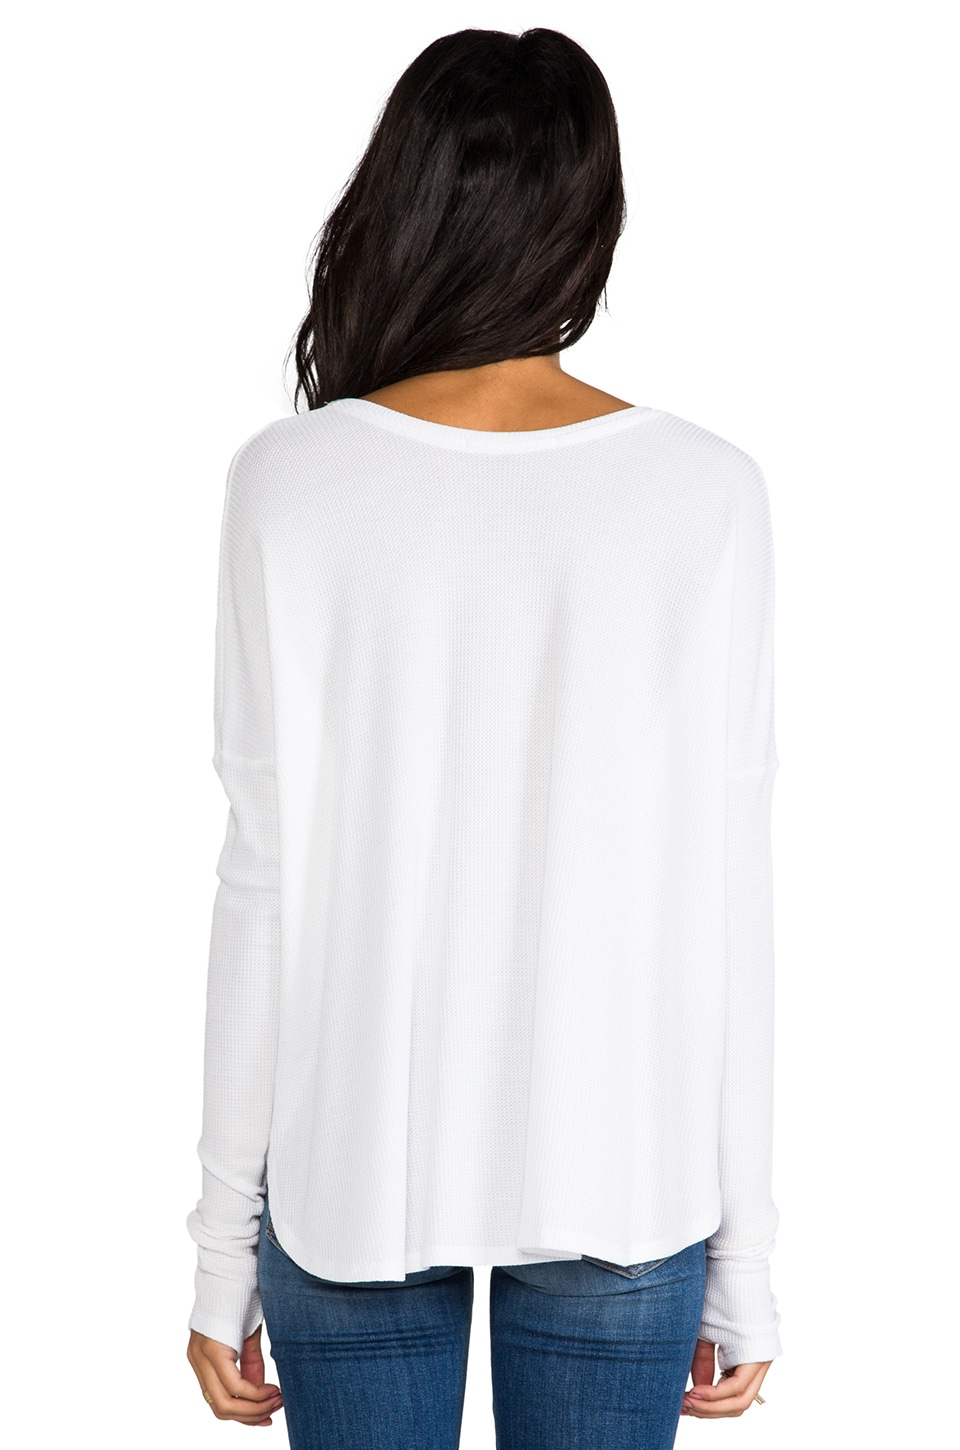 Feel the Piece Robin Thermal Flowy Top with Thumb Holes in White